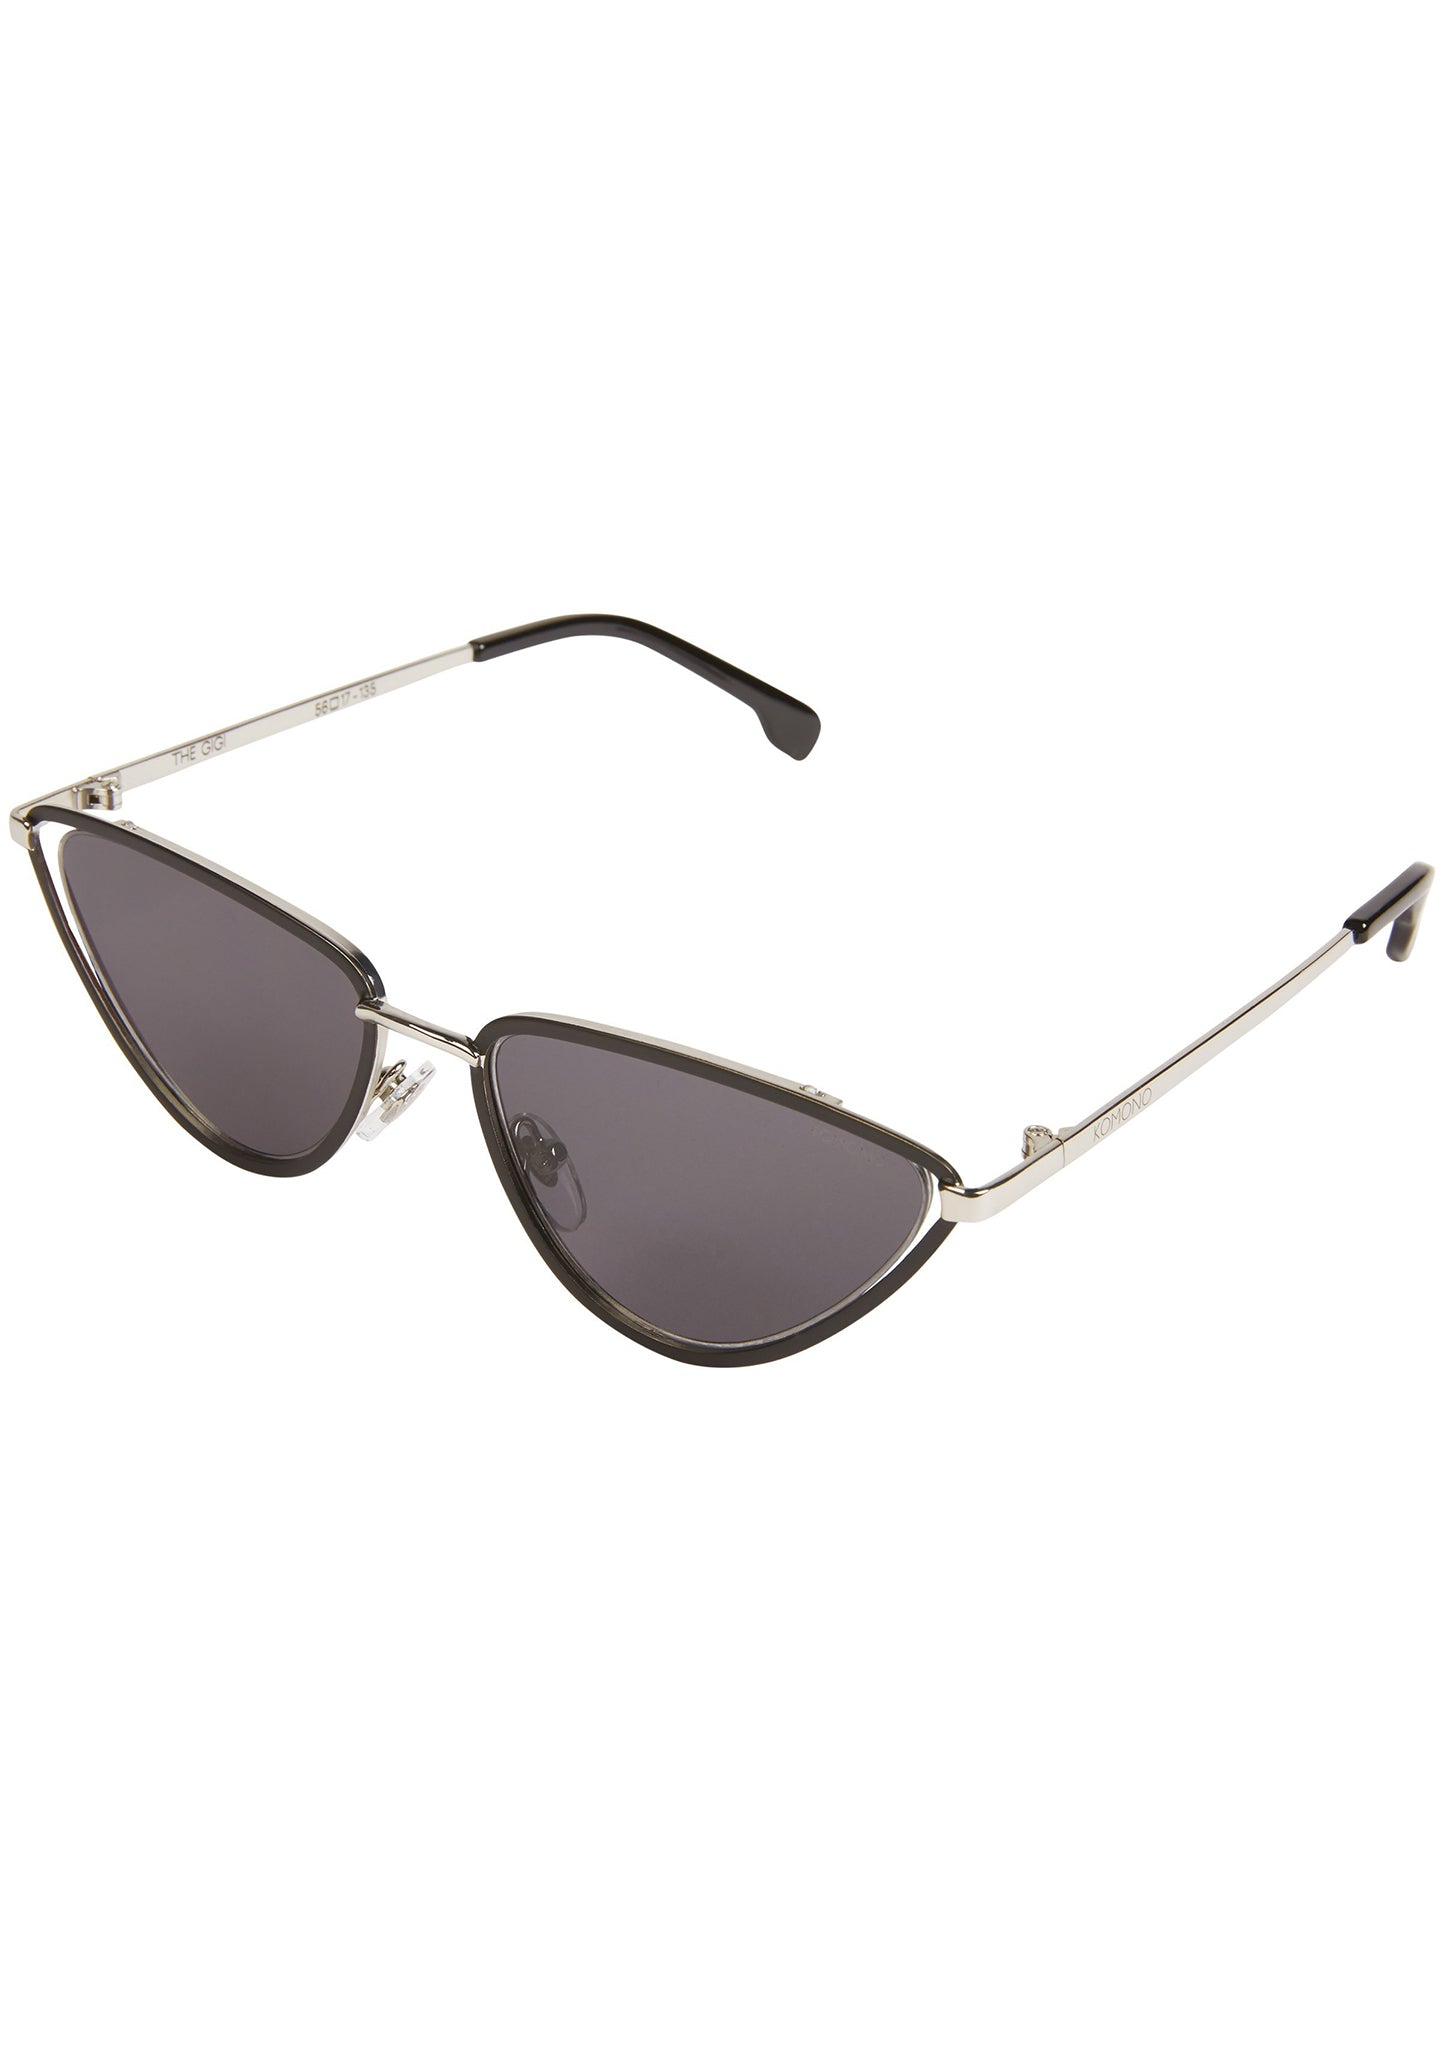 KOMONO Gigi Sunglasses in Black Silver